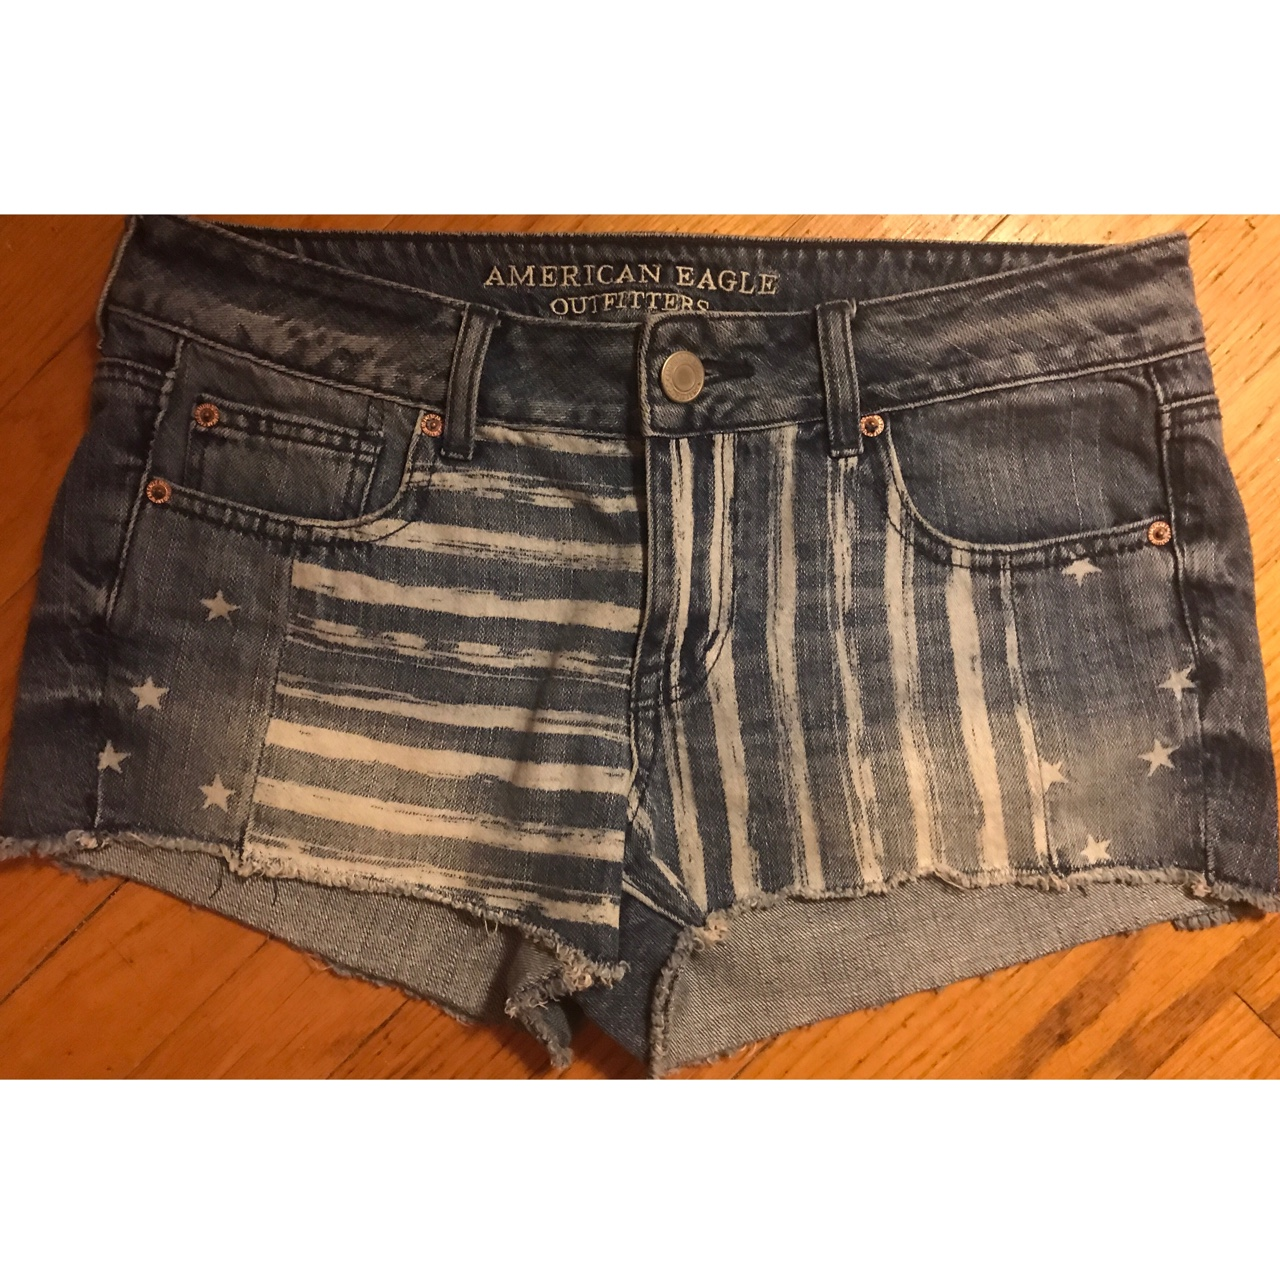 American Eagle shorts with American flag overlay    - Depop